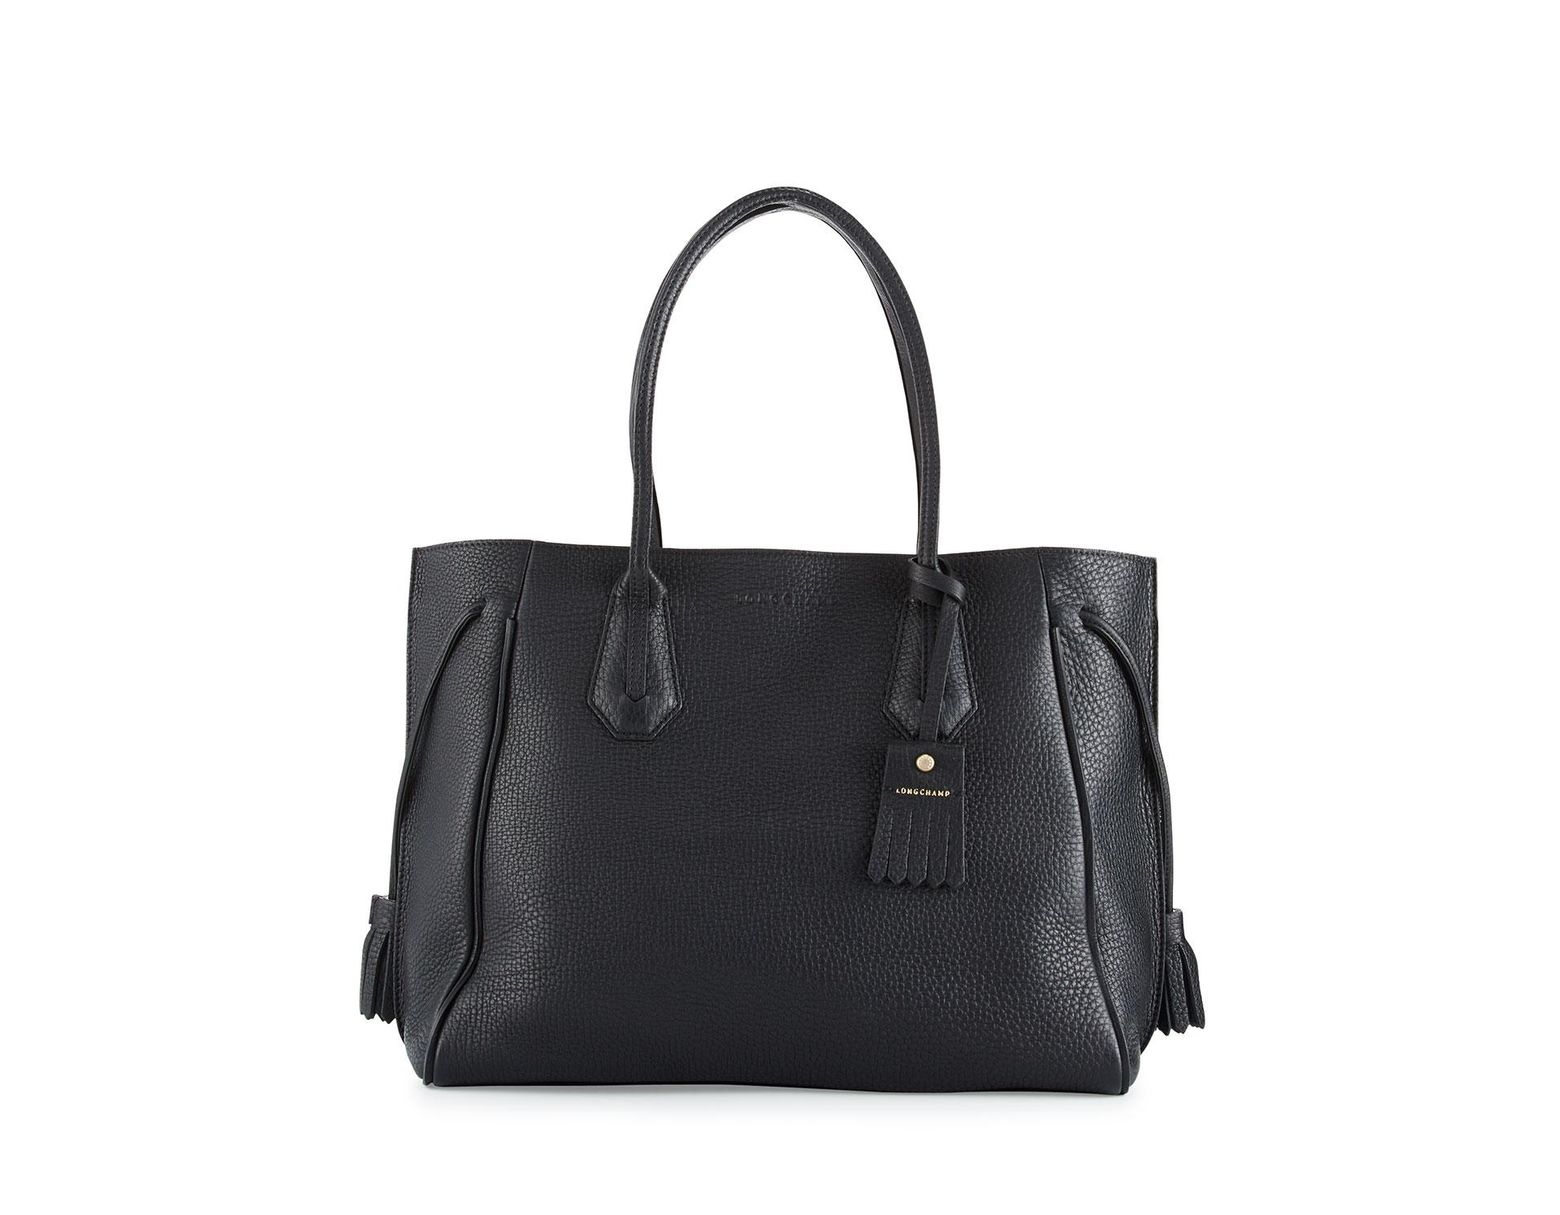 5e2b07c03a Longchamp Penelope Large Leather Tote Bag in Black - Save 12% - Lyst